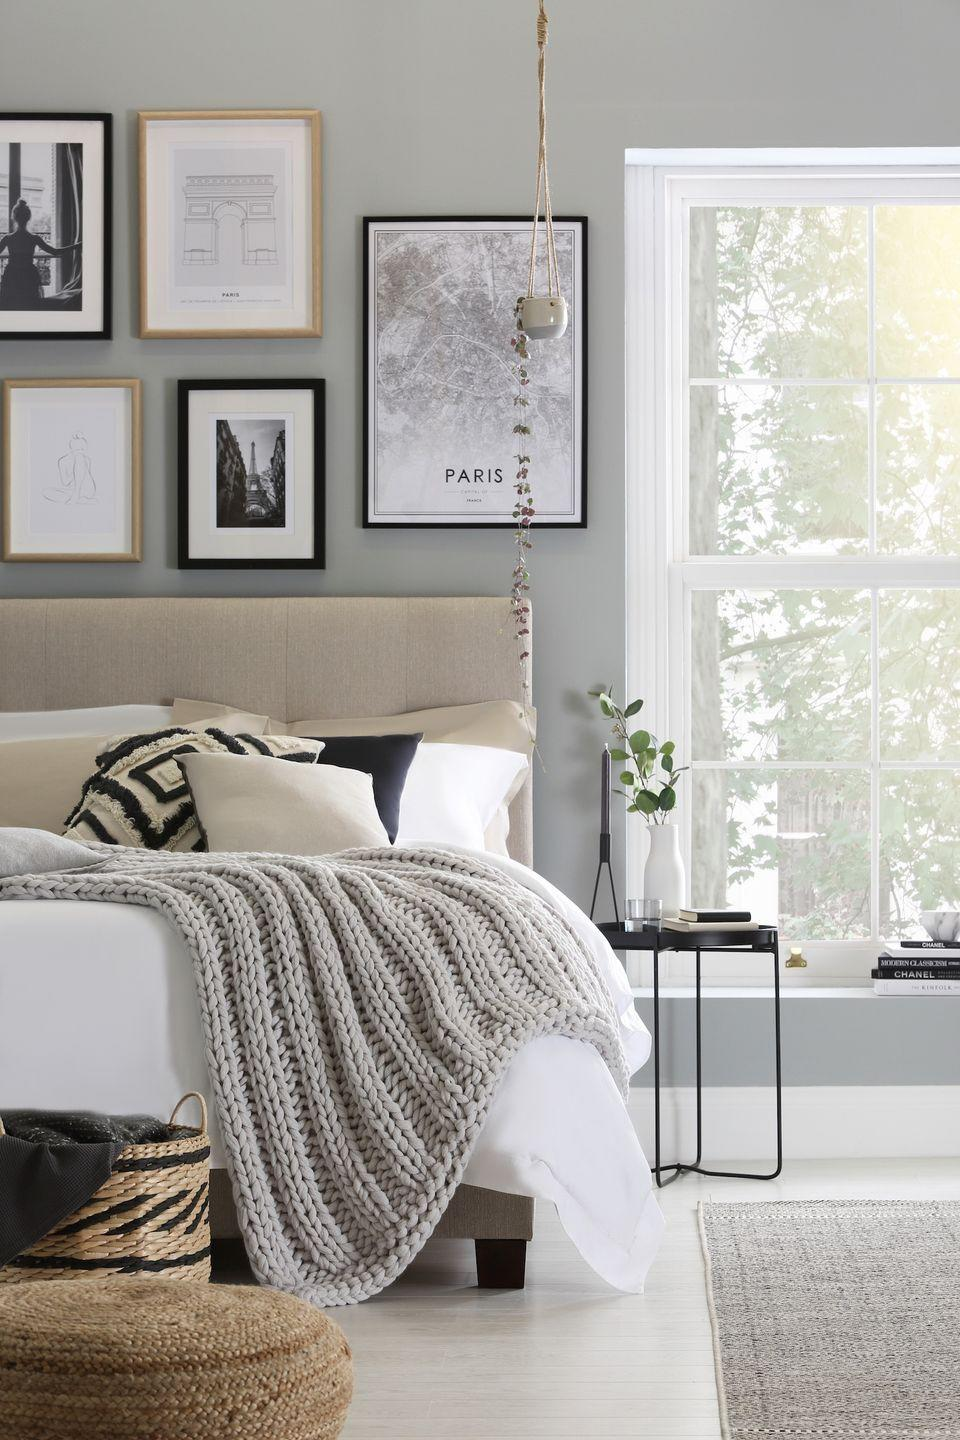 """<p>Use artwork to introduce grey into your bedroom. Use black and white images and place the frames together in a grid above the bed, choose different sizes and you could even mix up the frames – black, white and natural – for an eclectic look. Then build on the look with a grey chunky throw, rug and black and cream cushions. </p><p>Top Tip: Make sure the spacing between the frames is even and not too far apart, 4-5cm is a good gap.</p><p>Pictured: Walkworth bed, <a href=""""https://go.redirectingat.com?id=127X1599956&url=https%3A%2F%2Fwww.furniturechoice.co.uk%2Fbedroom%2Fbed-collections%2Fwalkworth%2F&sref=https%3A%2F%2Fwww.housebeautiful.com%2Fuk%2Fdecorate%2Fbedroom%2Fg35432015%2Fgrey-bedroom-ideas%2F"""" rel=""""nofollow noopener"""" target=""""_blank"""" data-ylk=""""slk:Furniture & Choice"""" class=""""link rapid-noclick-resp"""">Furniture & Choice</a>. Find prints and frames at <a href=""""https://desenio.co.uk/"""" rel=""""nofollow noopener"""" target=""""_blank"""" data-ylk=""""slk:Desenio"""" class=""""link rapid-noclick-resp"""">Desenio</a>.</p>"""